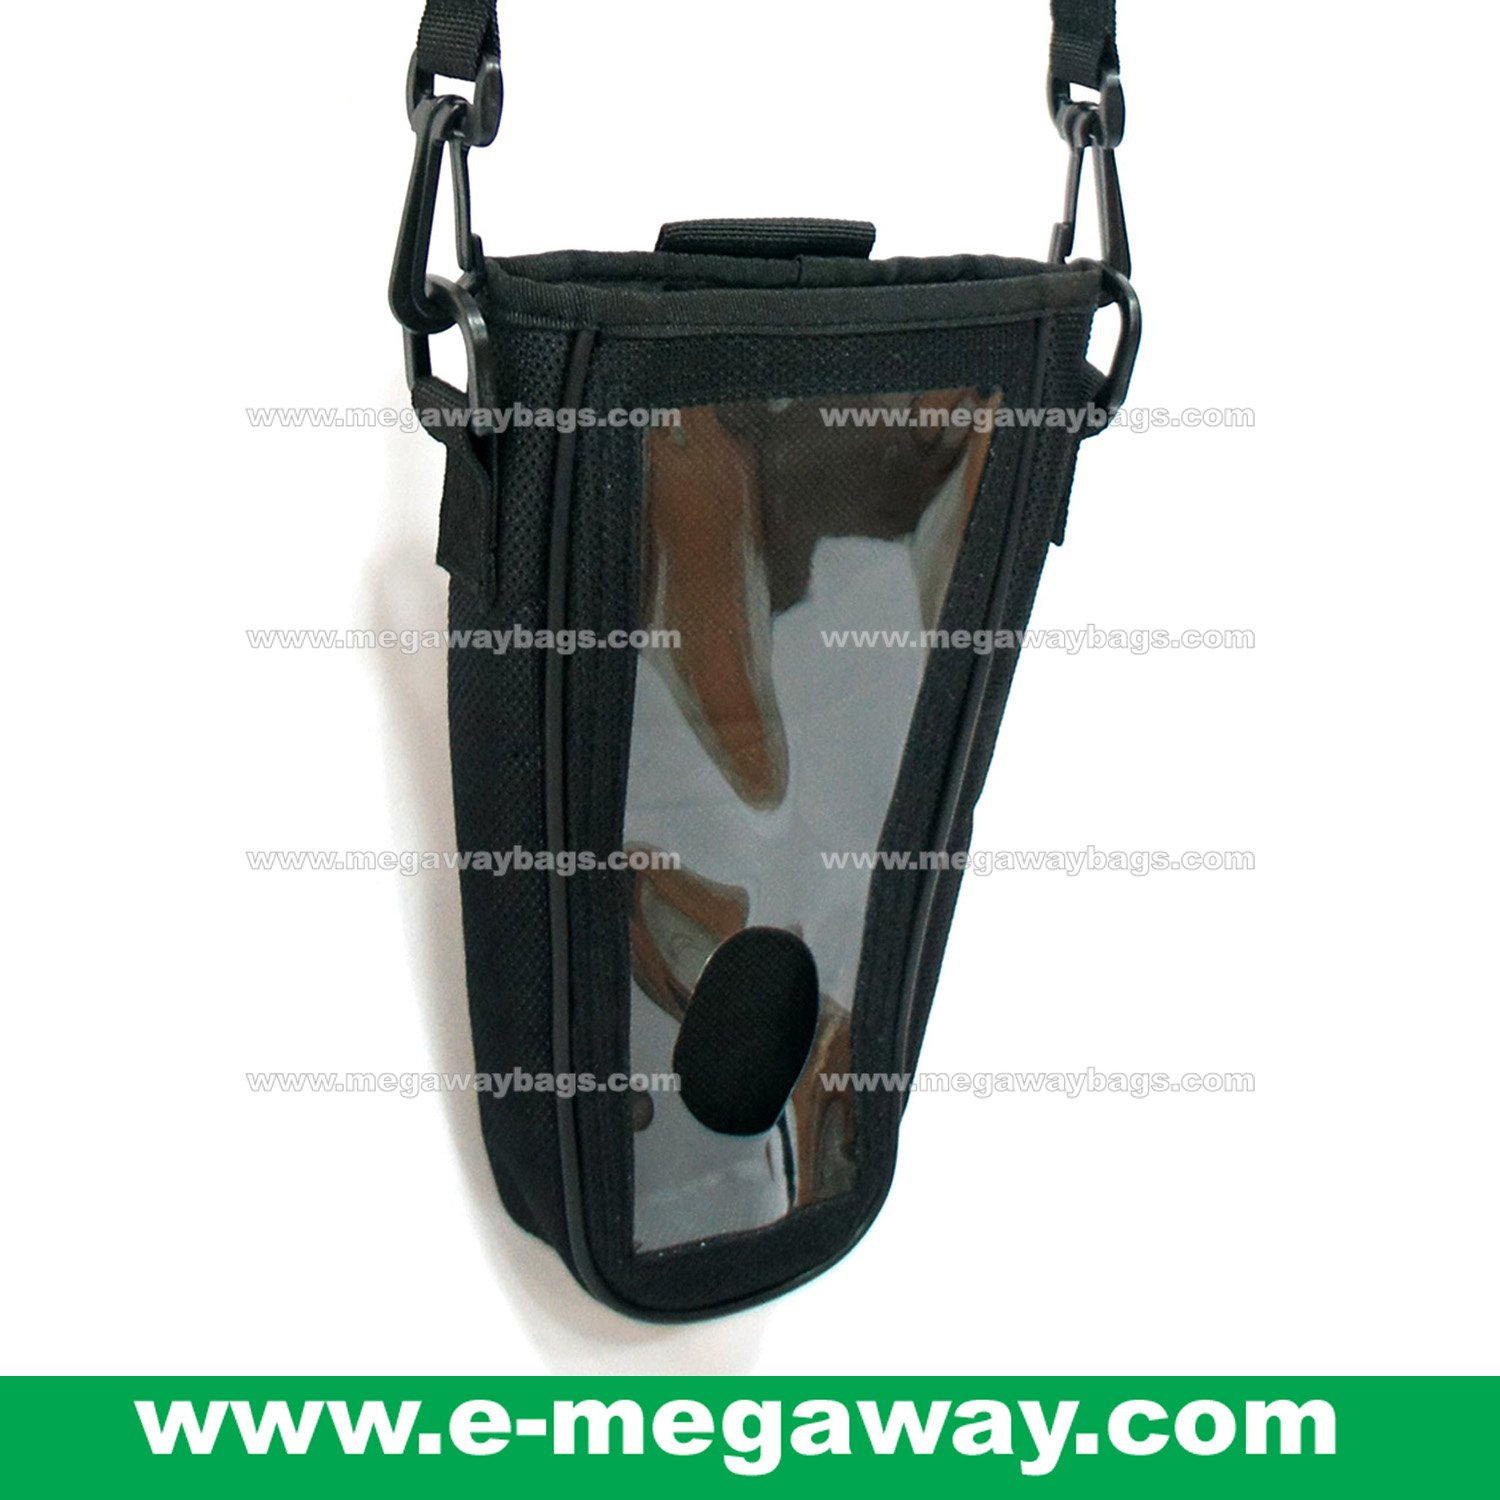 Tool Bag Pouch Belt Pack Gardening Work Planting Outdoor Gear Equip MegawayBags #CC-0794